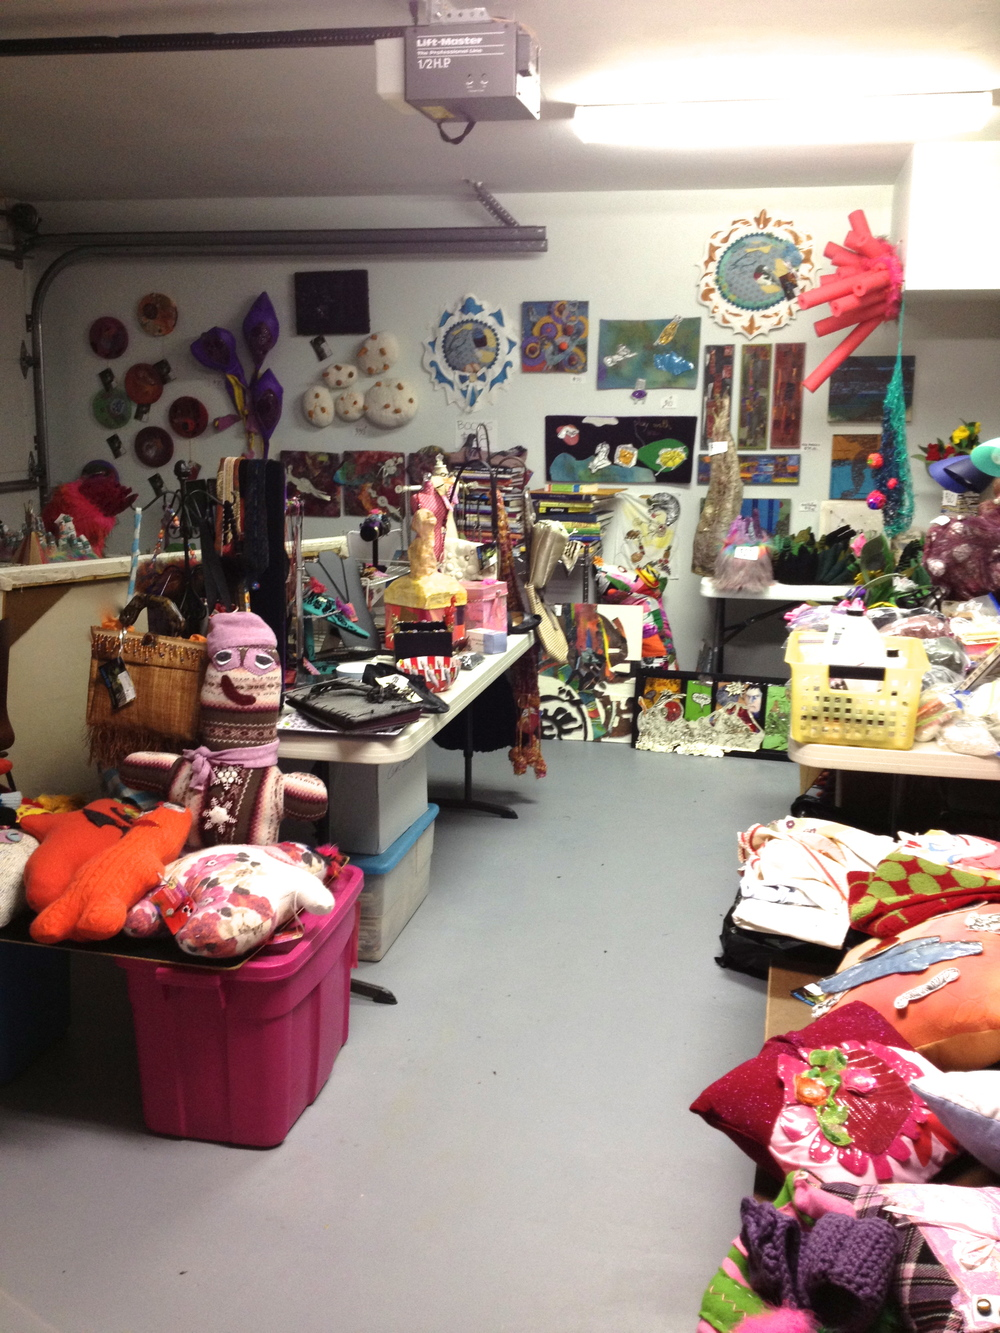 Crazy garage and art sale...everything going, going, going until it is GONE!